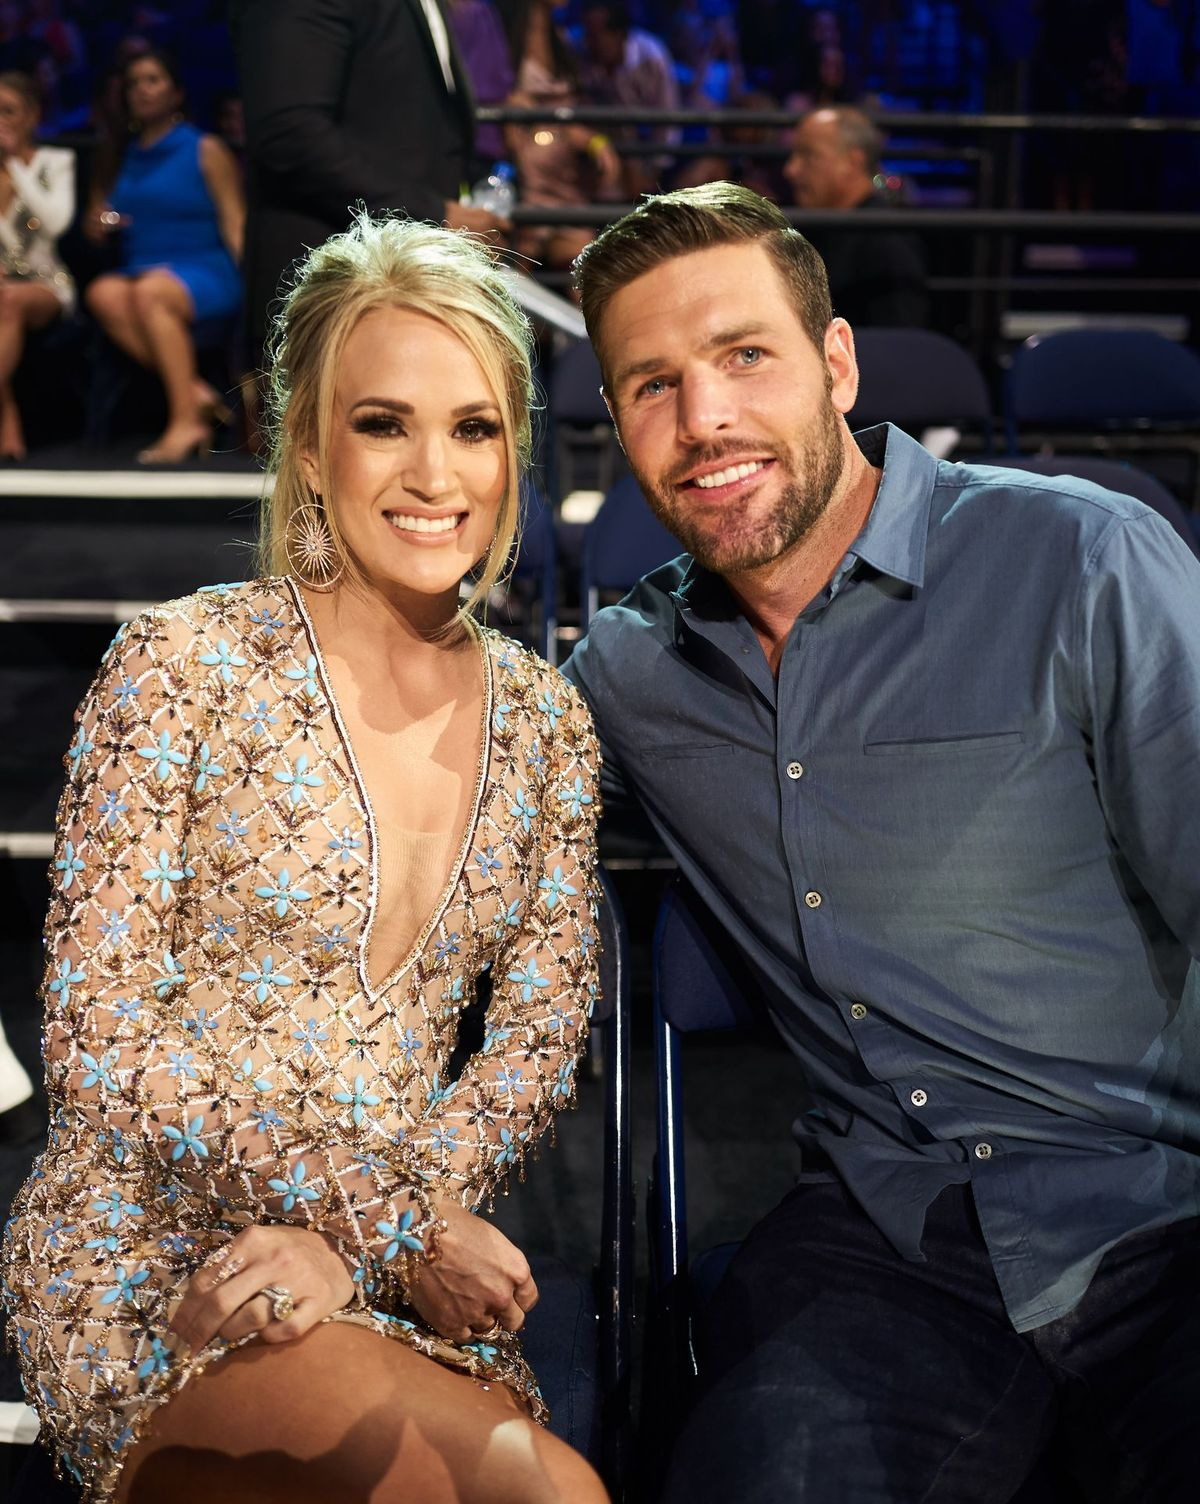 Carrie Underwood and Mike Fisher at the CMT Music Awards on June 05, 2019, in Nashville, Tennessee | Photo: John Shearer/Getty Images